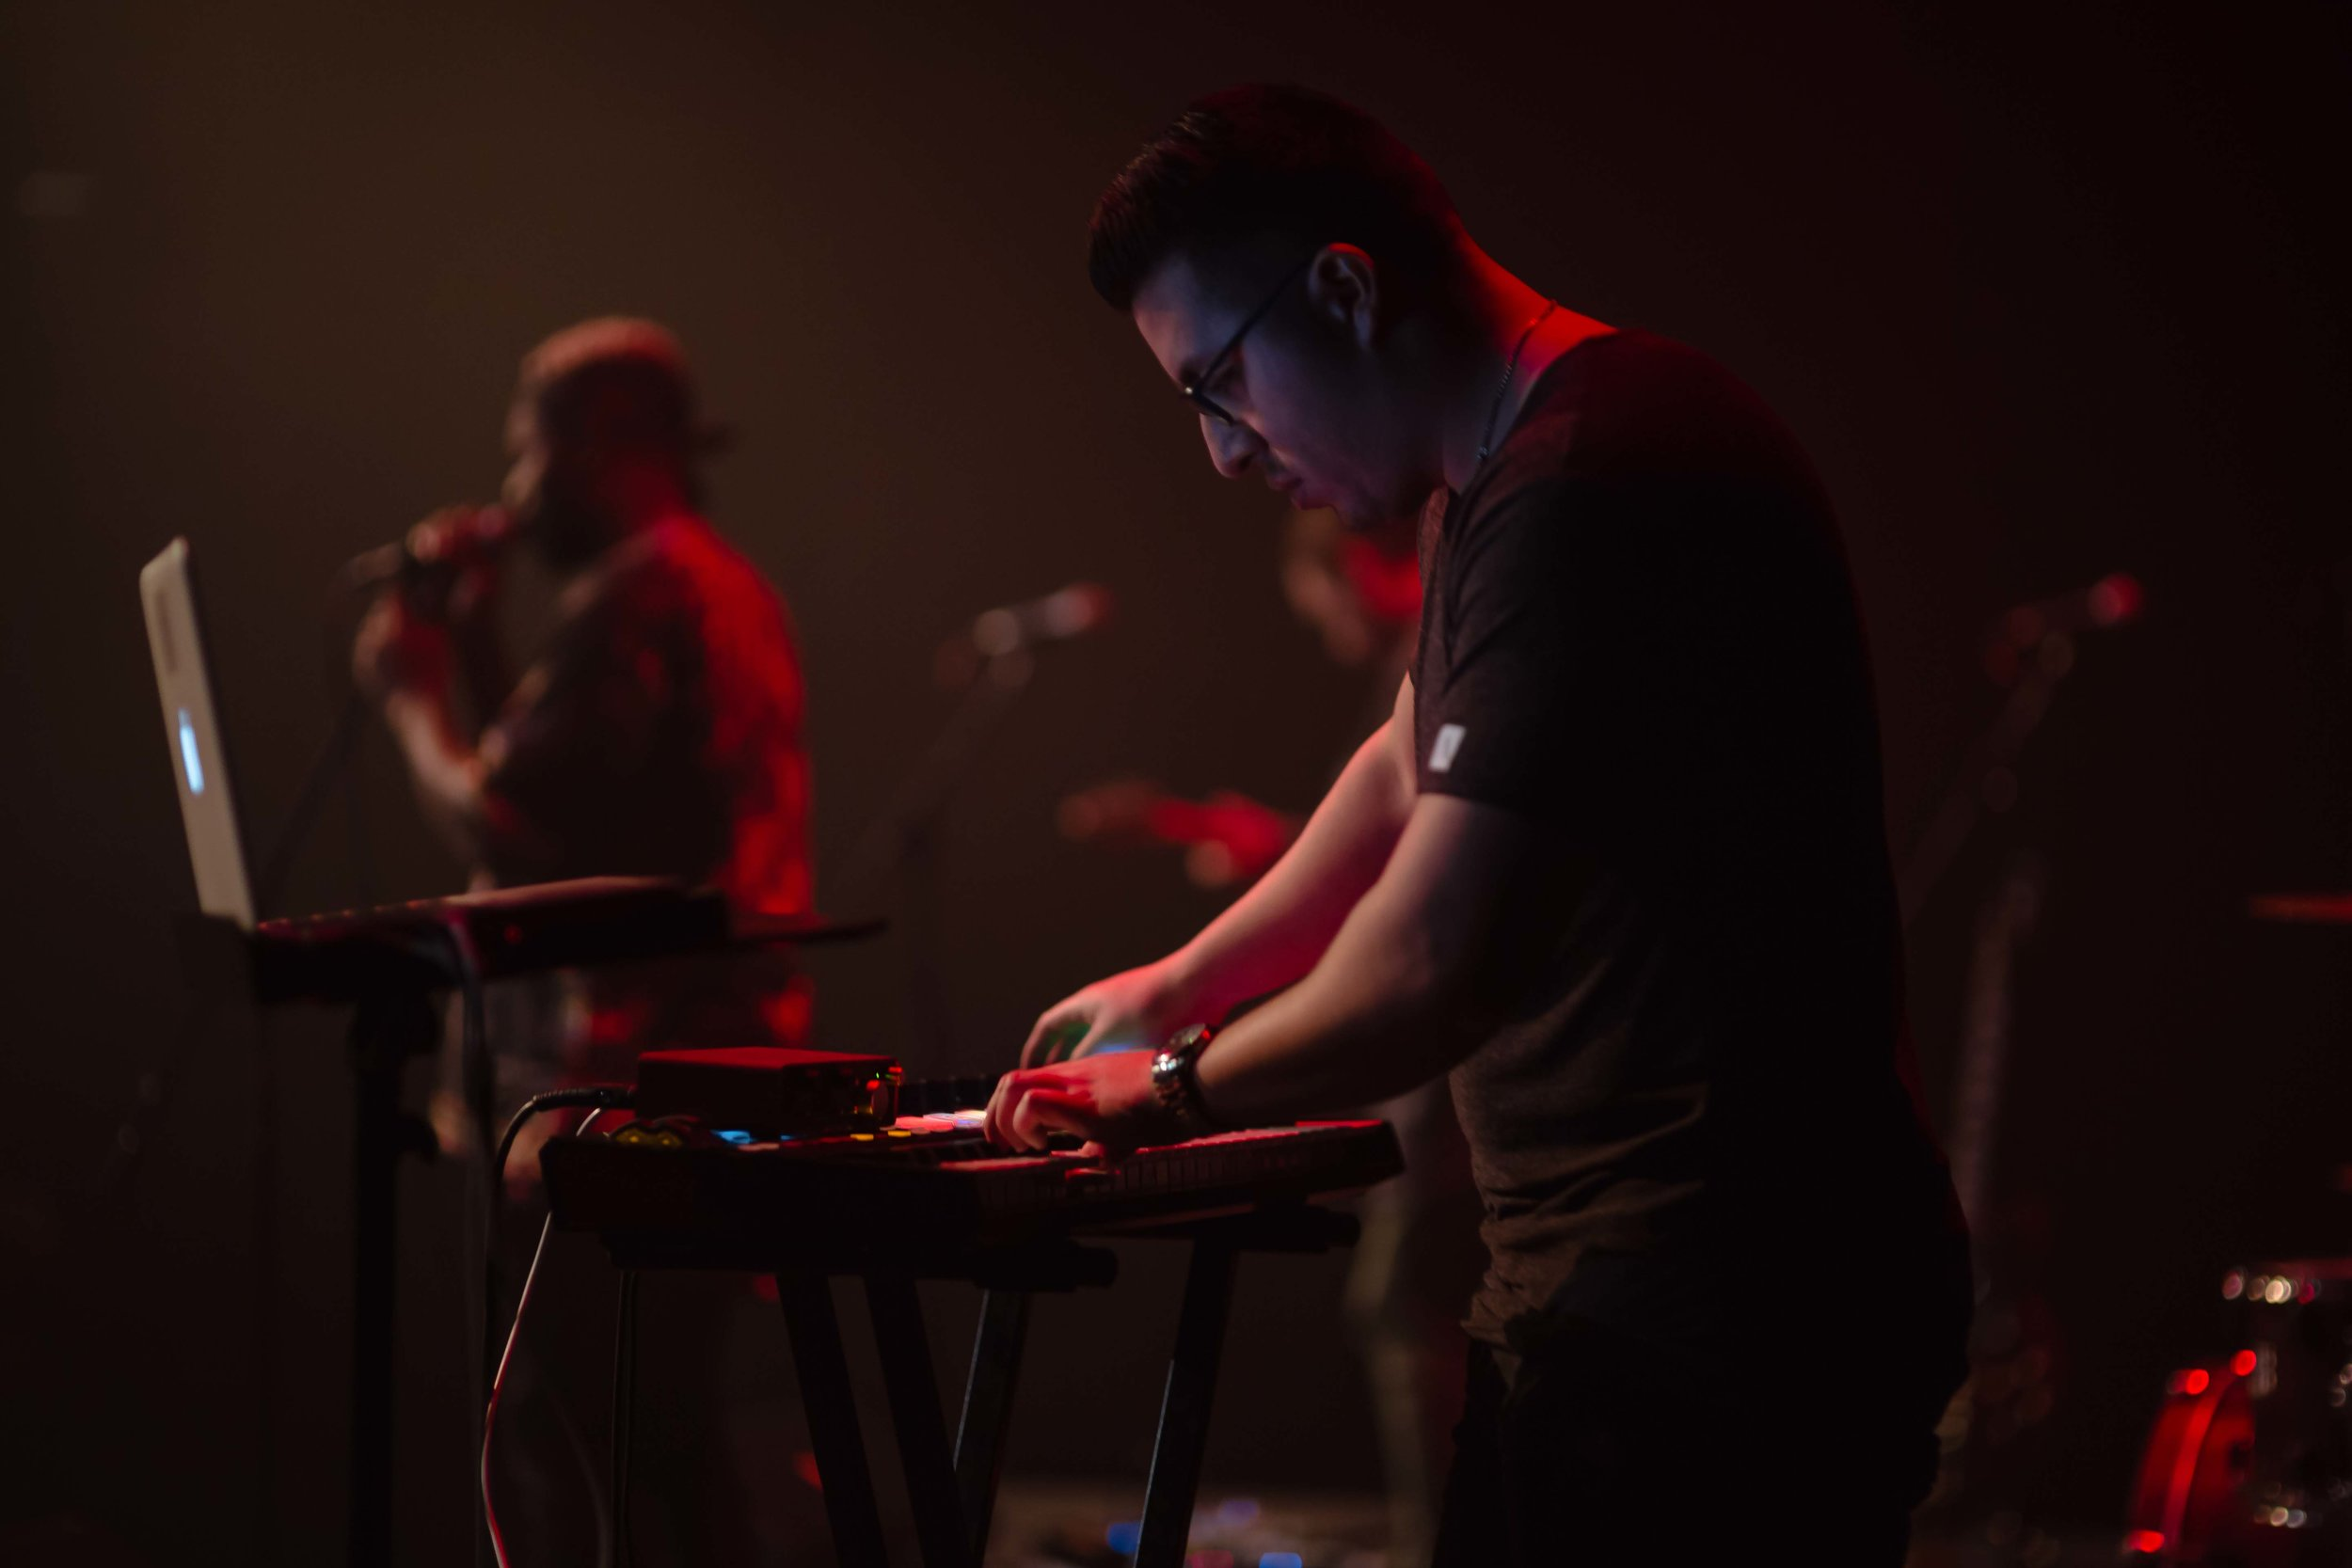 Side view of Kevin Castro (man with short dark hair and glasses) playing keyboard standing up against blurred backdrop of other musicians on a dark stage.